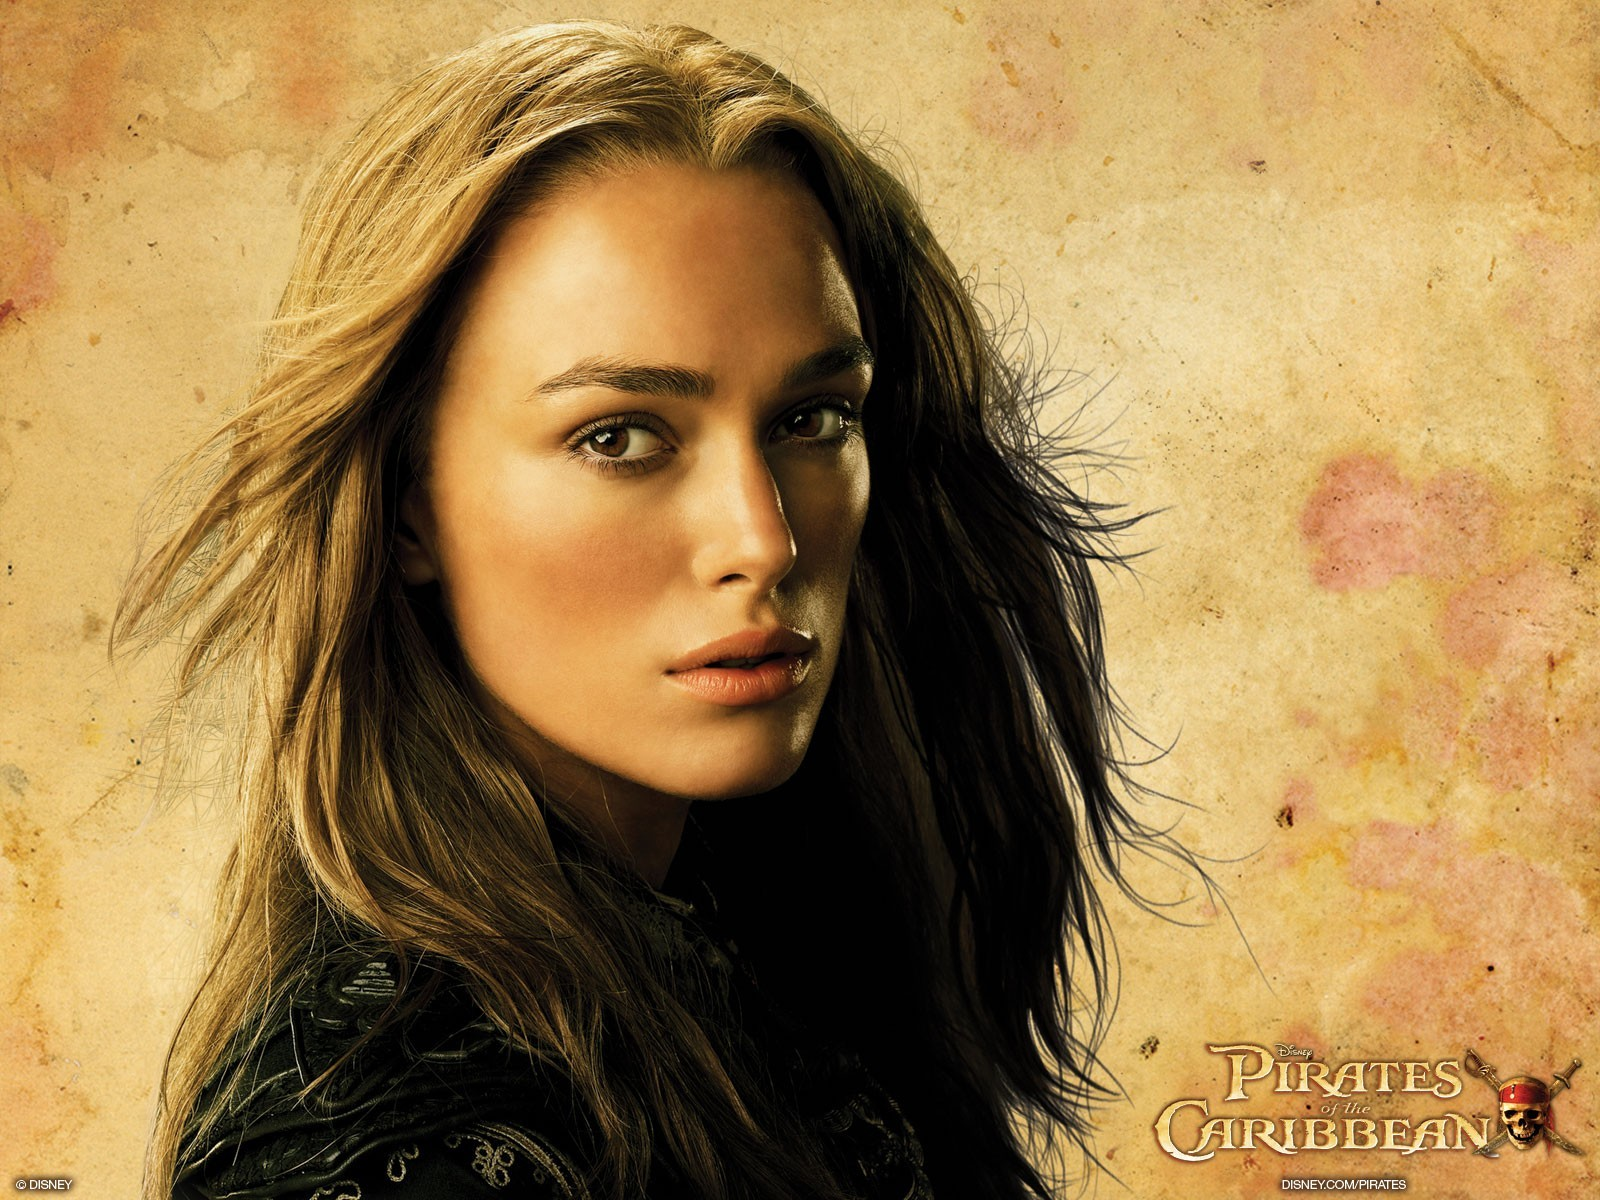 woman Movies Keira Knightley HD Wallpaper